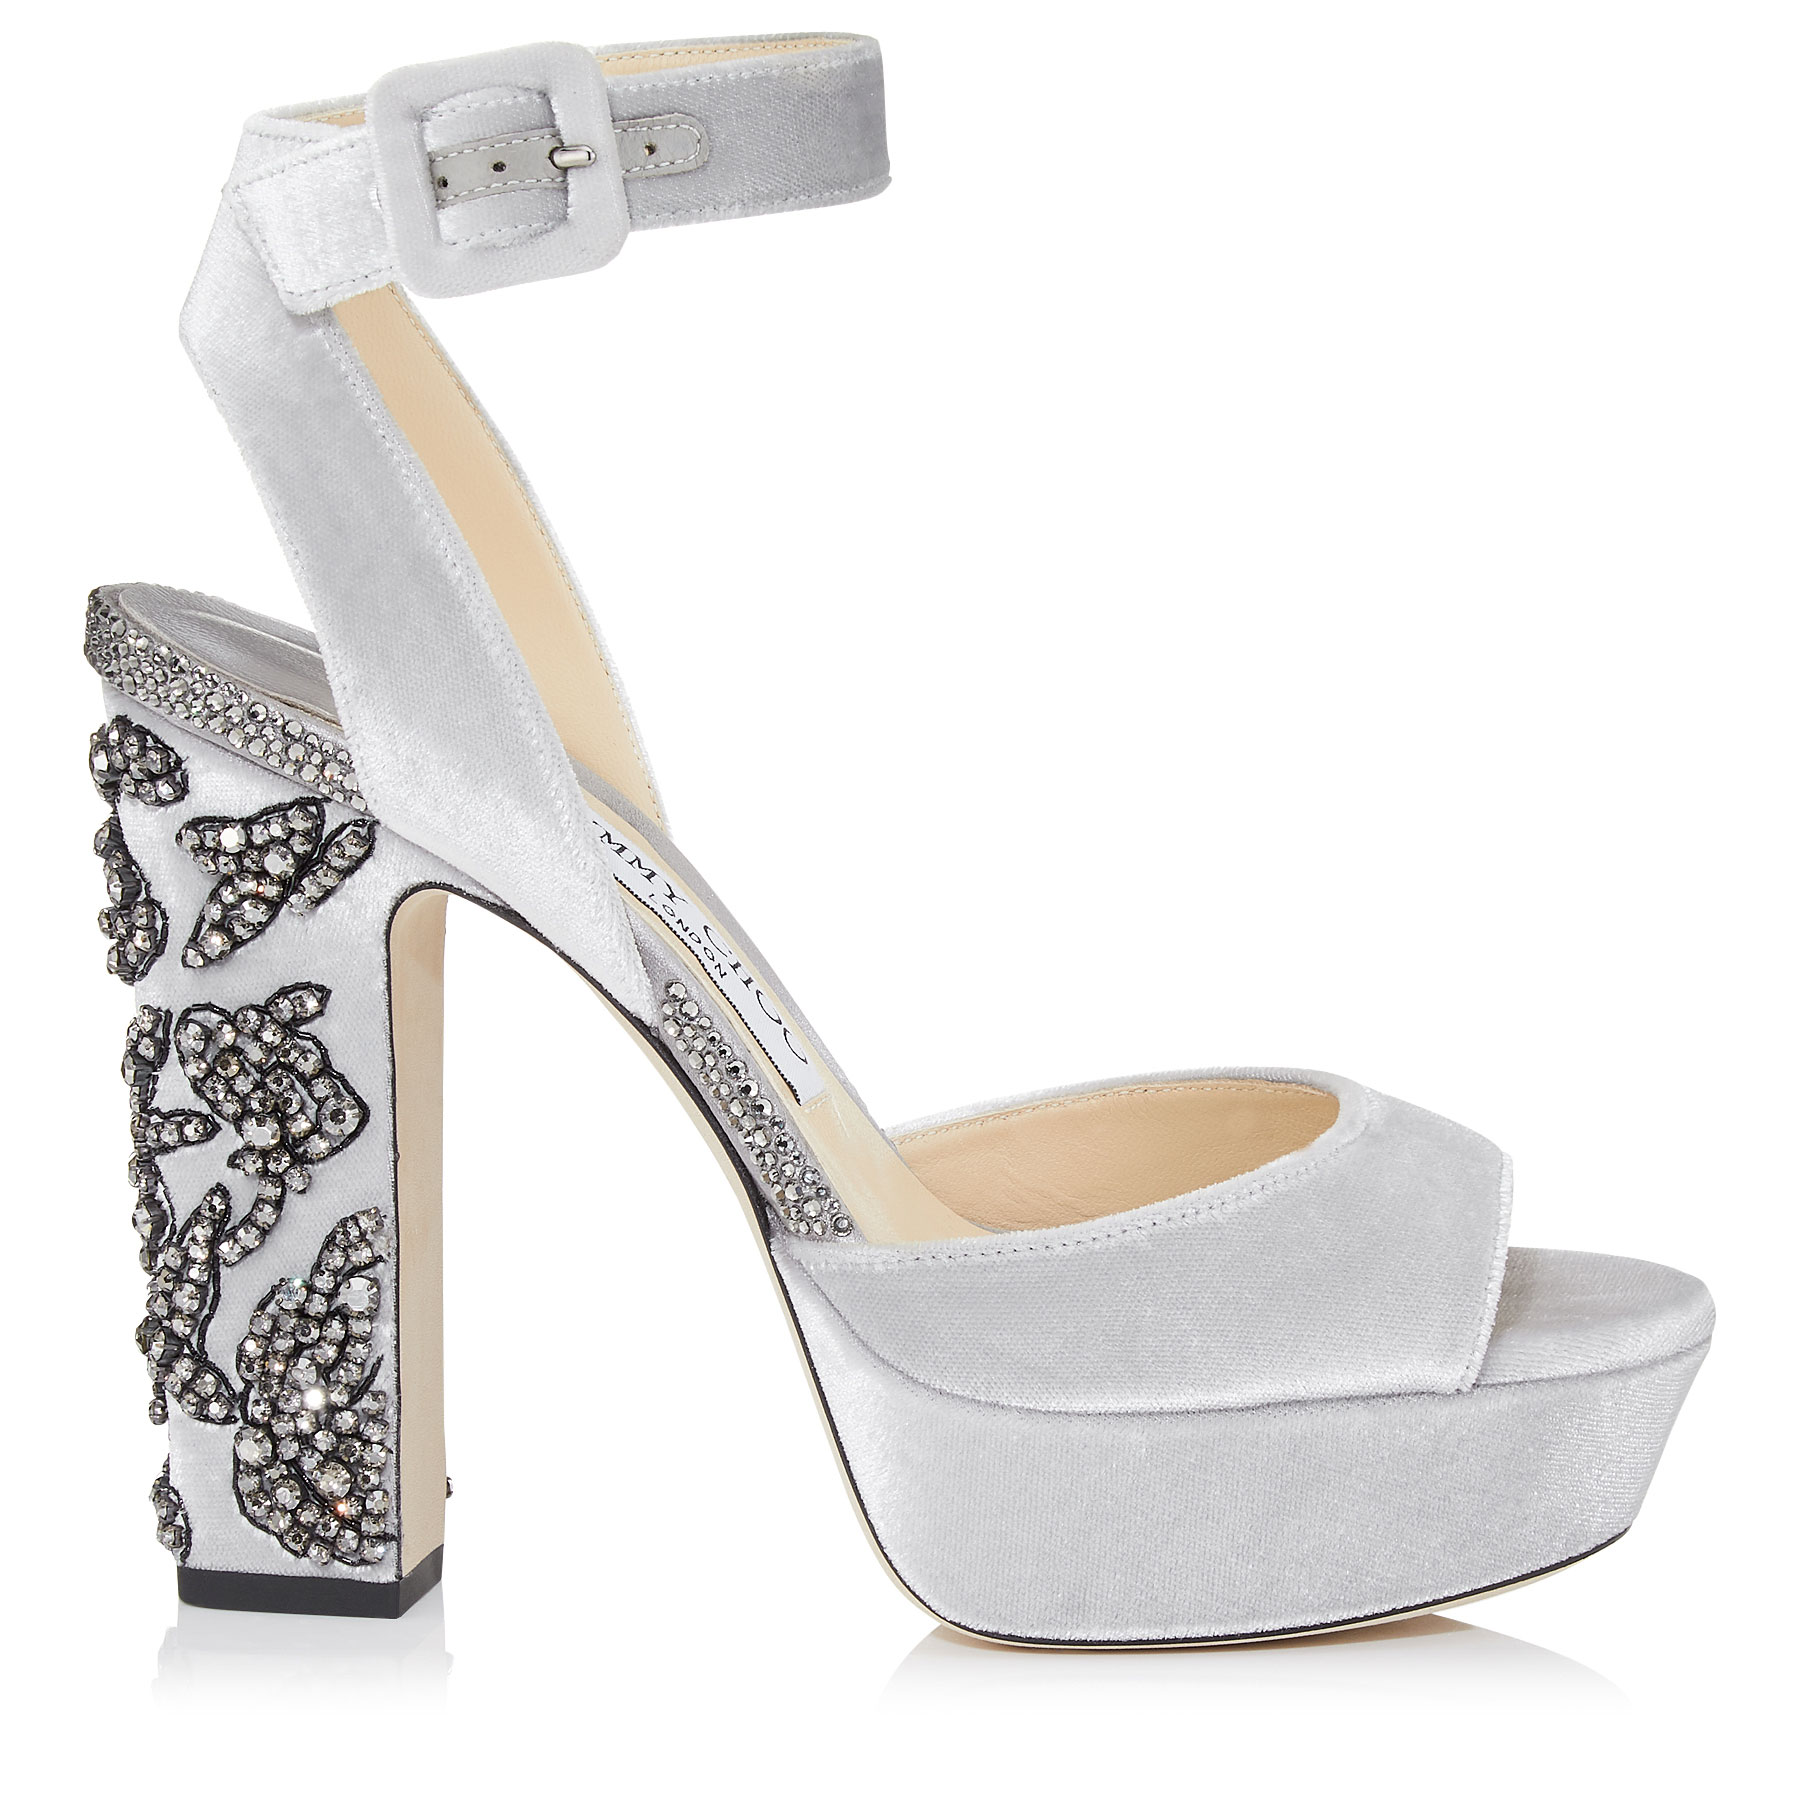 JULIET 120 Silver Velvet Platform Sandals with Peony Crystal Embroidery by Jimmy Choo